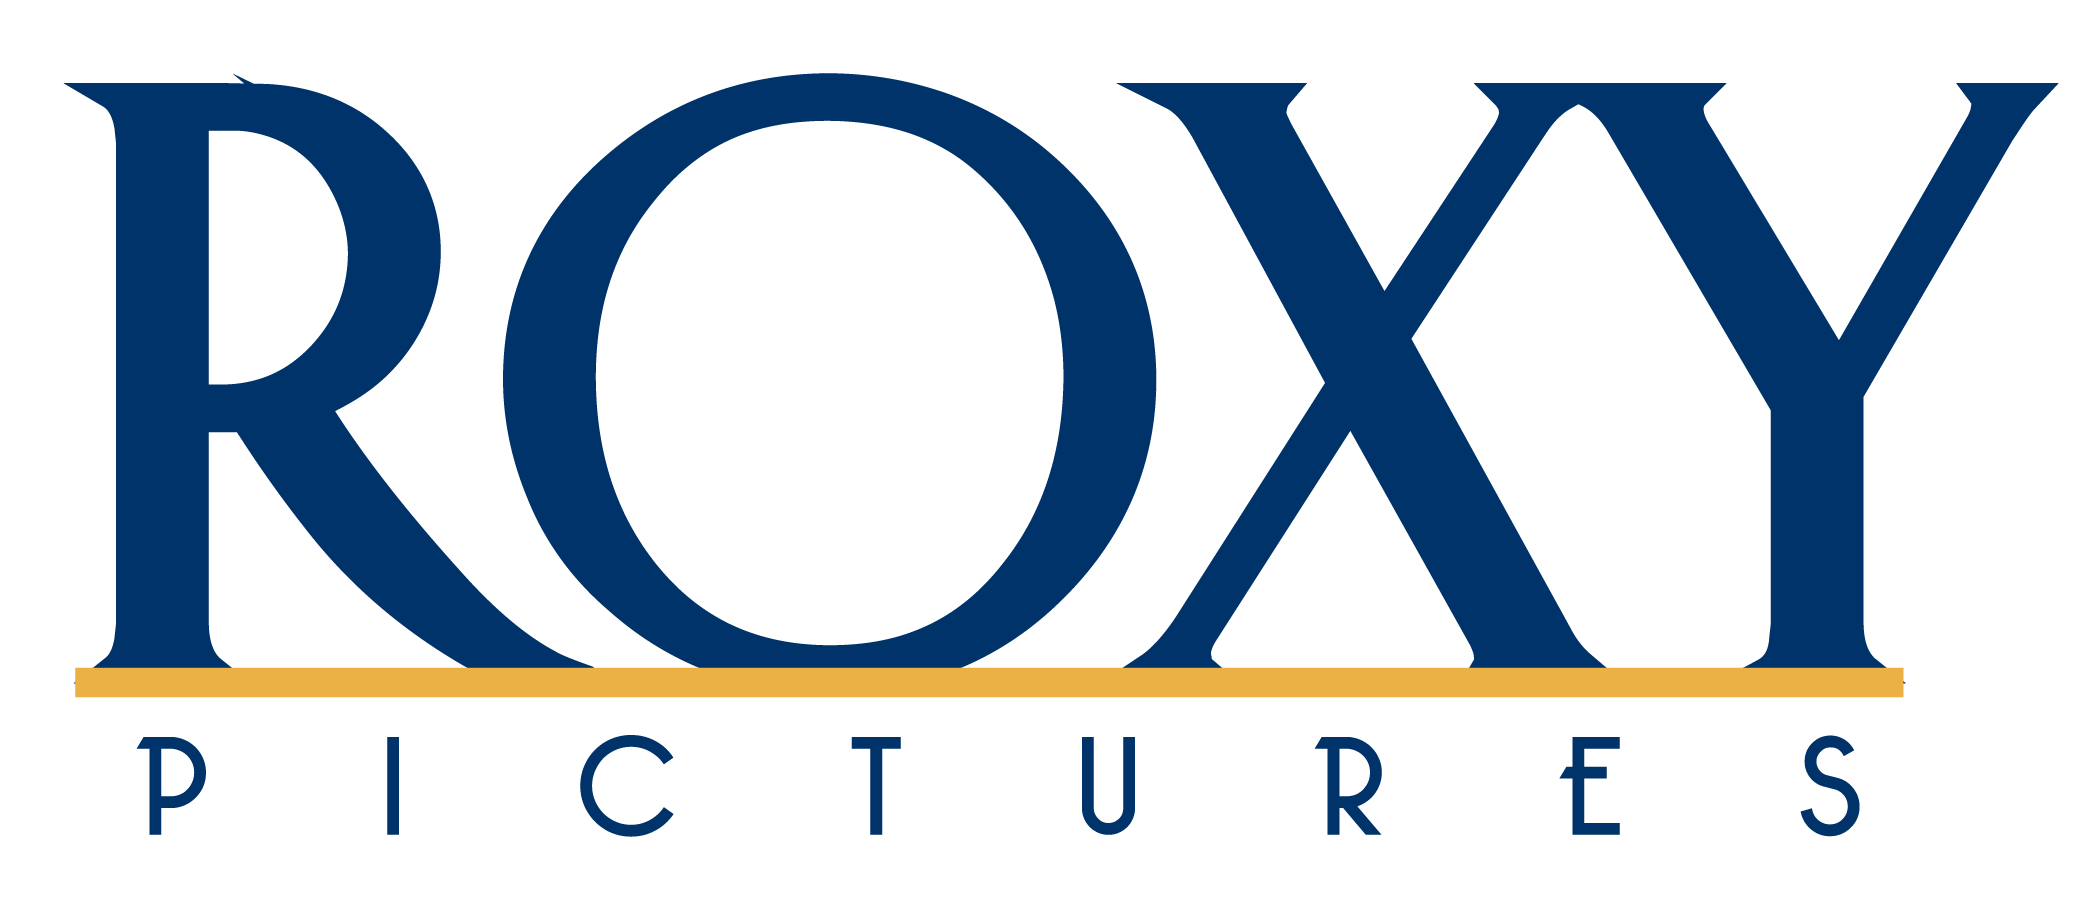 Roxy Pictures